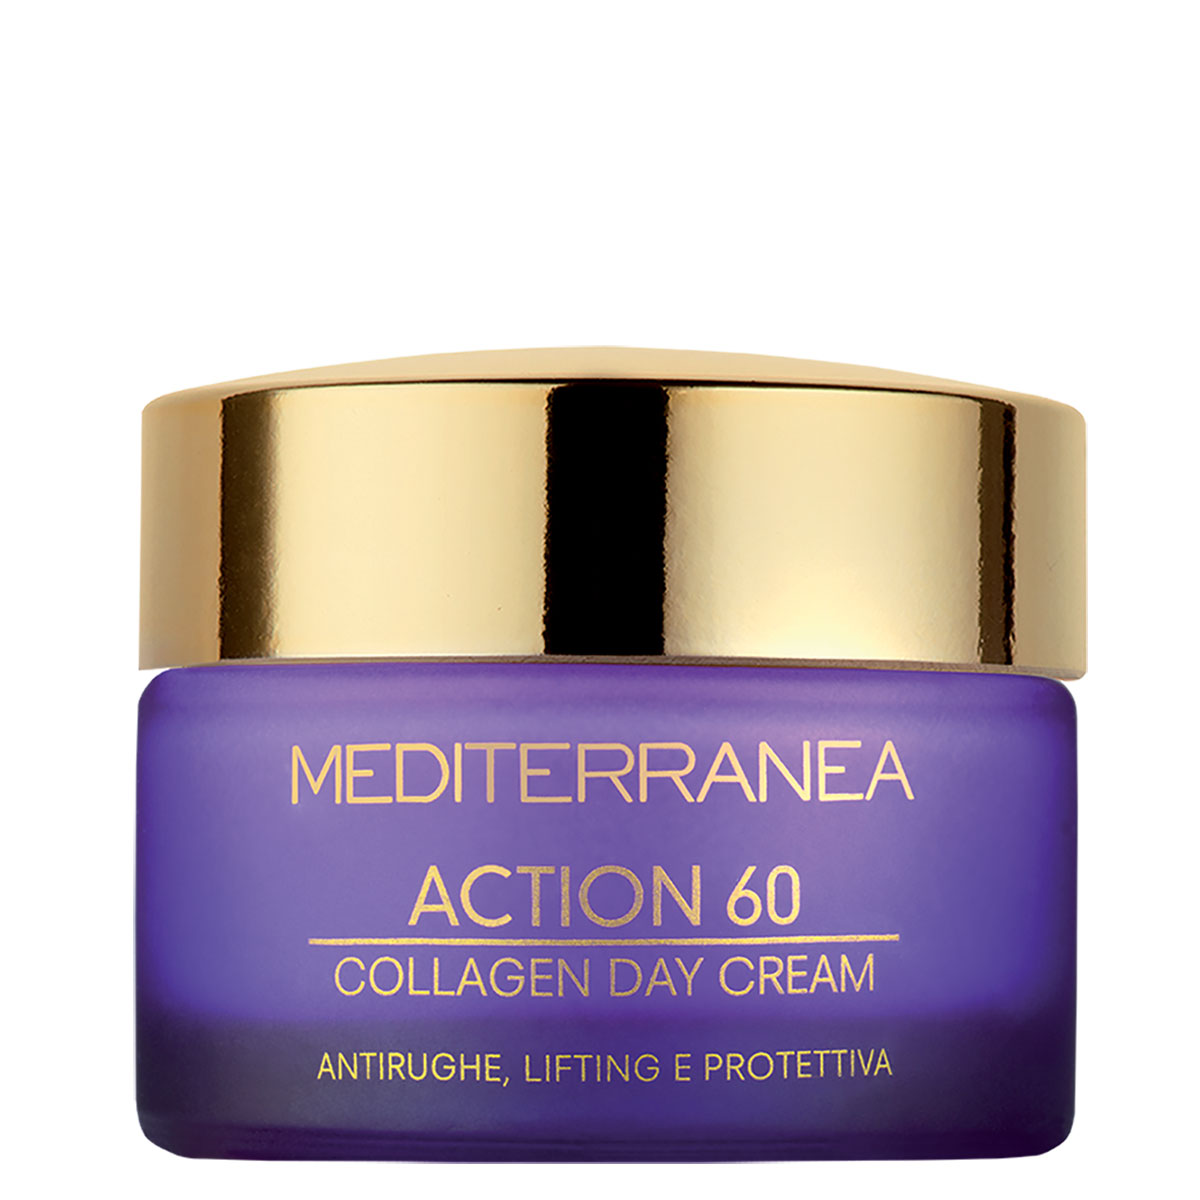 ACTION 60 COLLAGEN DAY CREAM